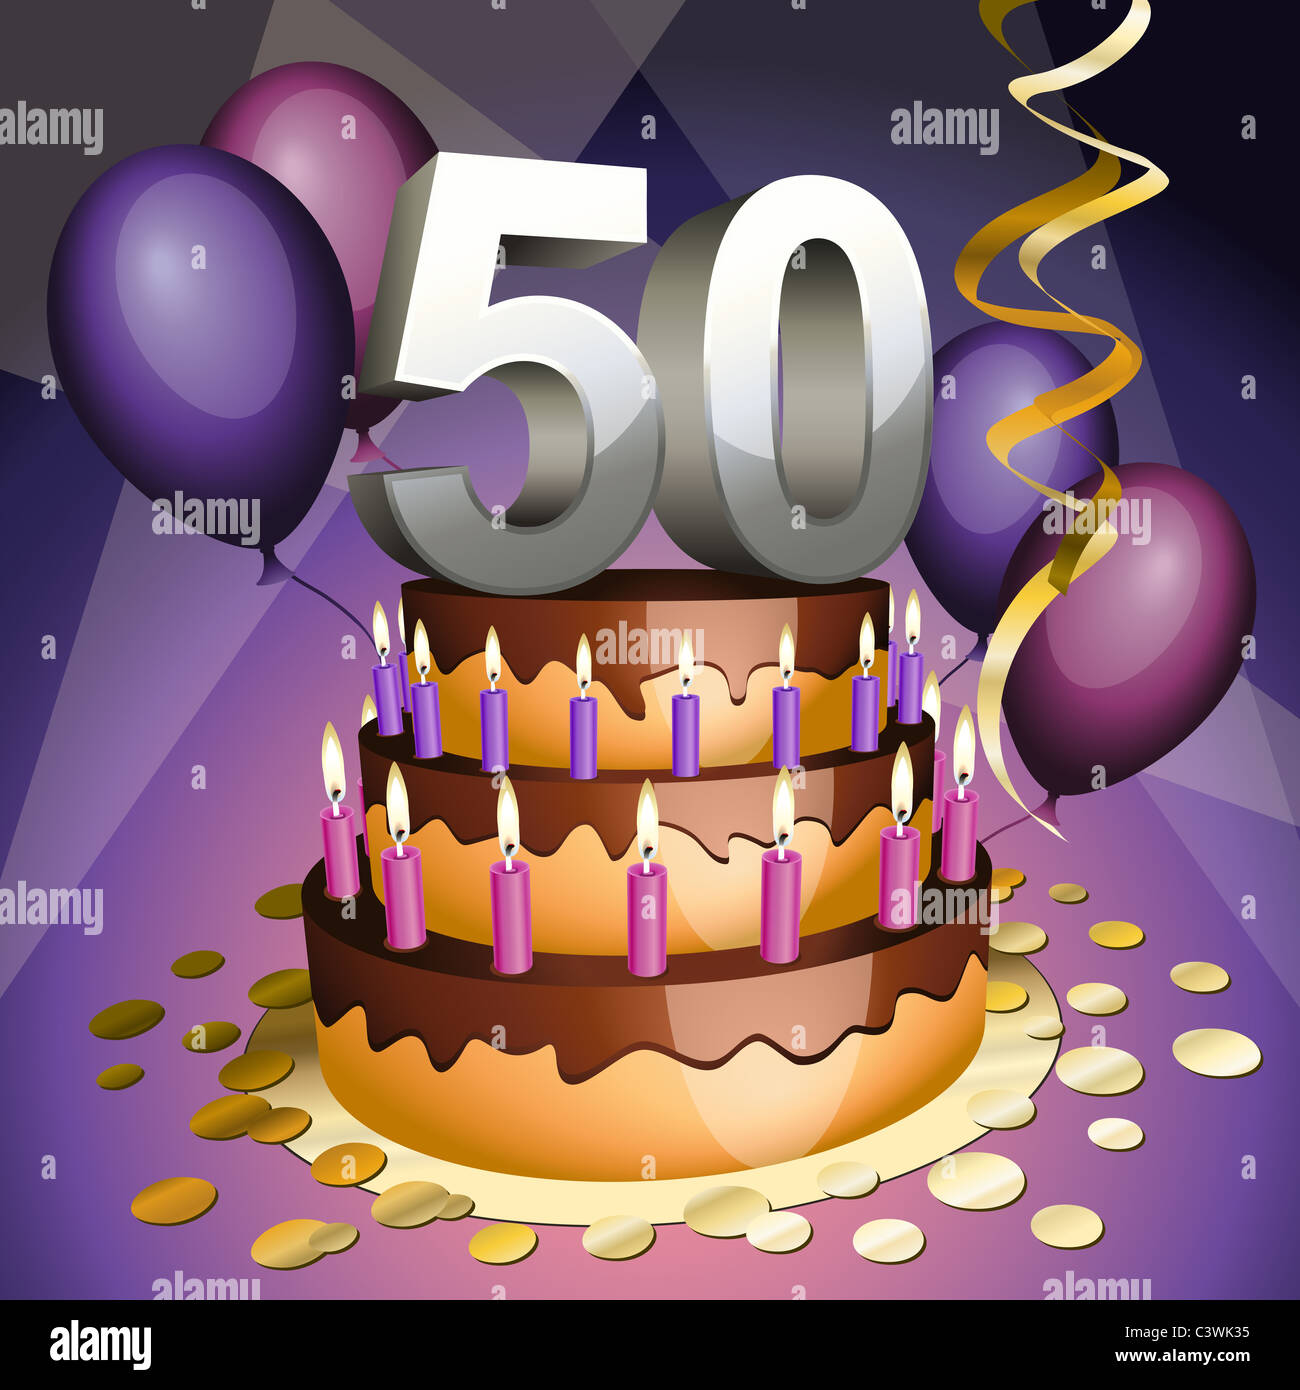 Fiftieth Anniversary Cake With Numbers Candles And Balloons Stock